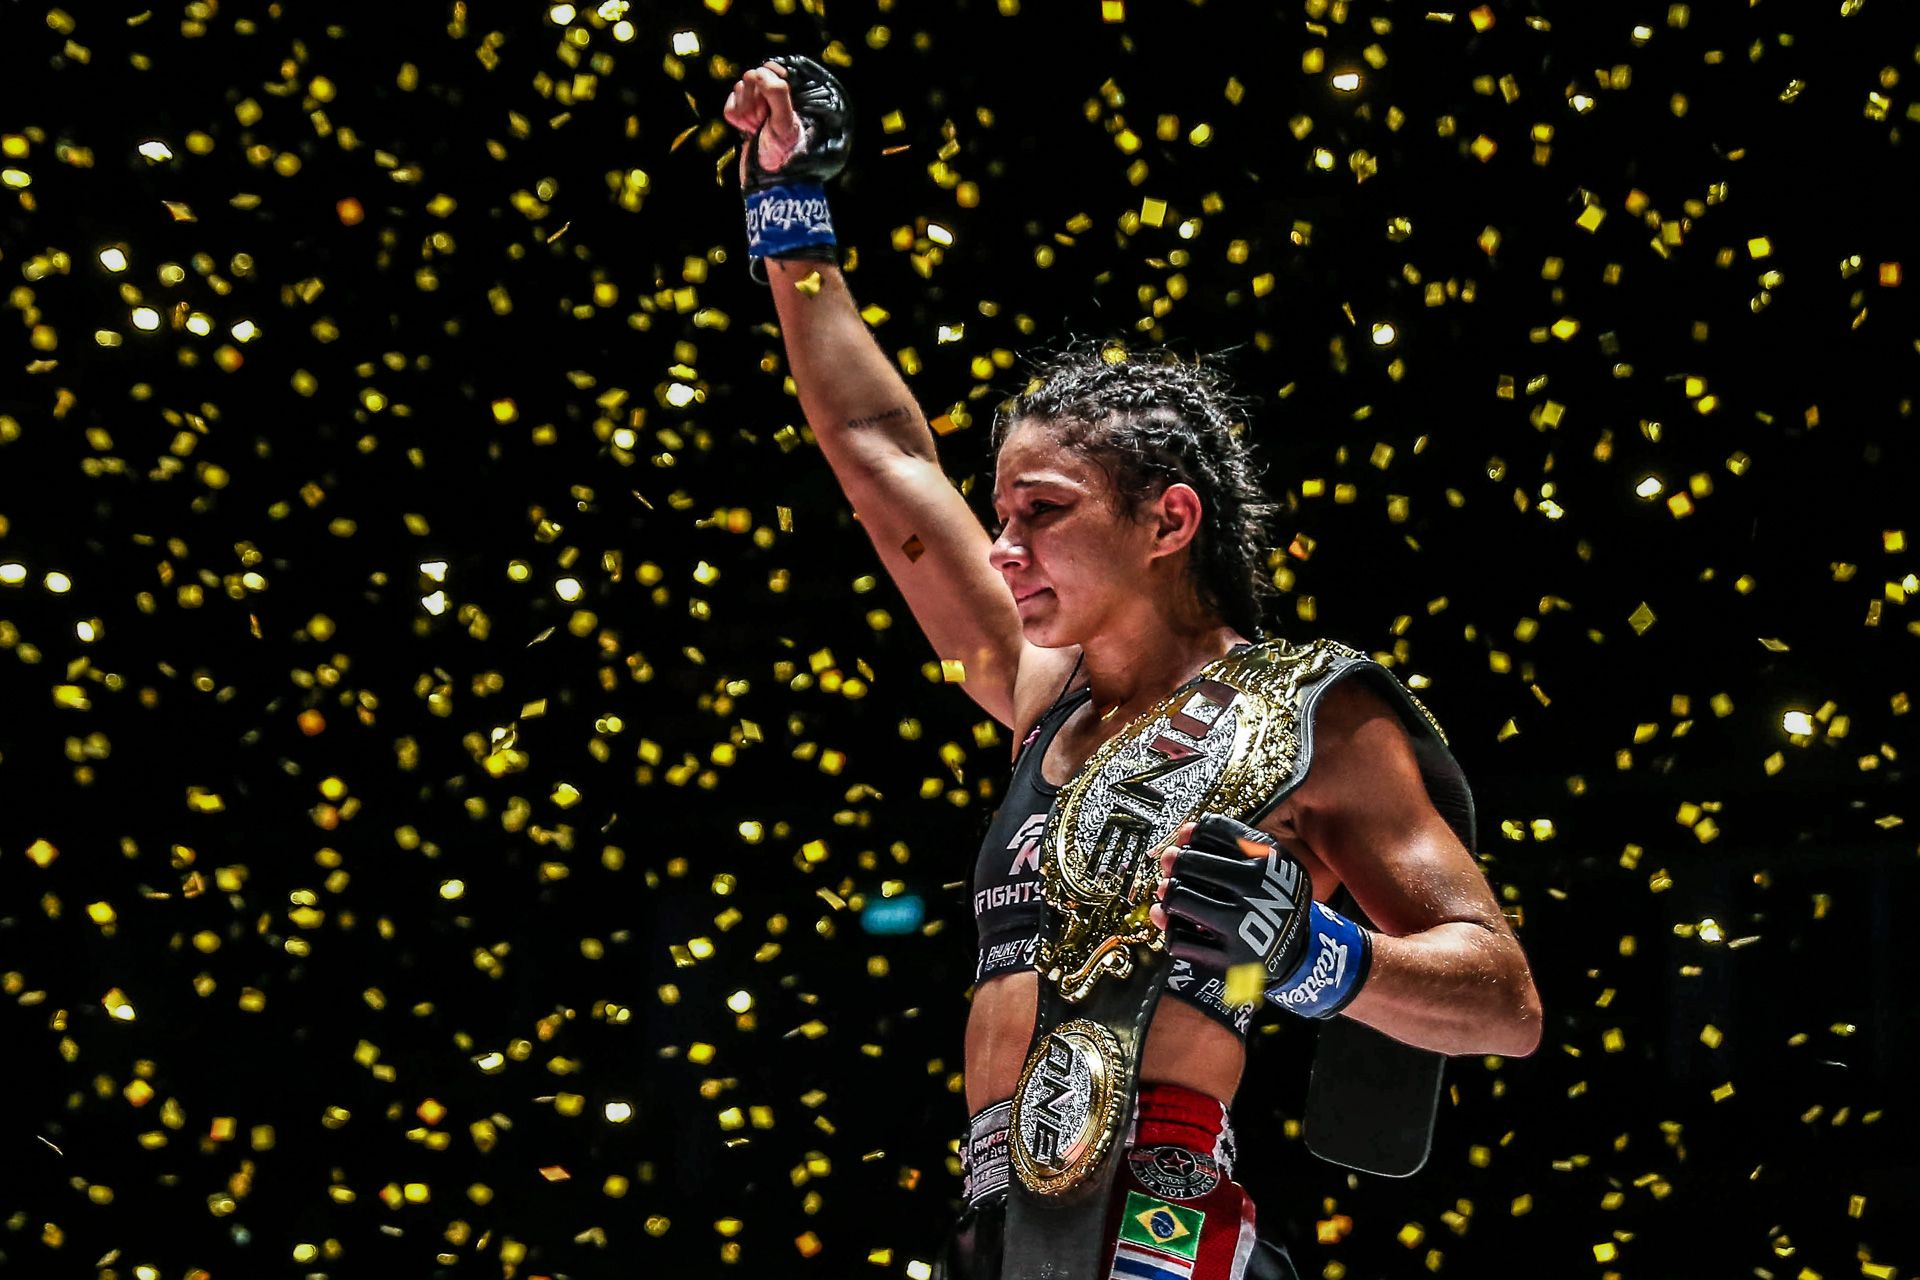 Tiebreaker Times Rodrigues stuns Stamp to win ONE title at A New Breed Muay Thai News ONE Championship  Stamp Fairtex Rodlek PK.Saenchaimuaythaigym Kulabdam Sor. Jor. Piek Uthai Allycia Rodrigues